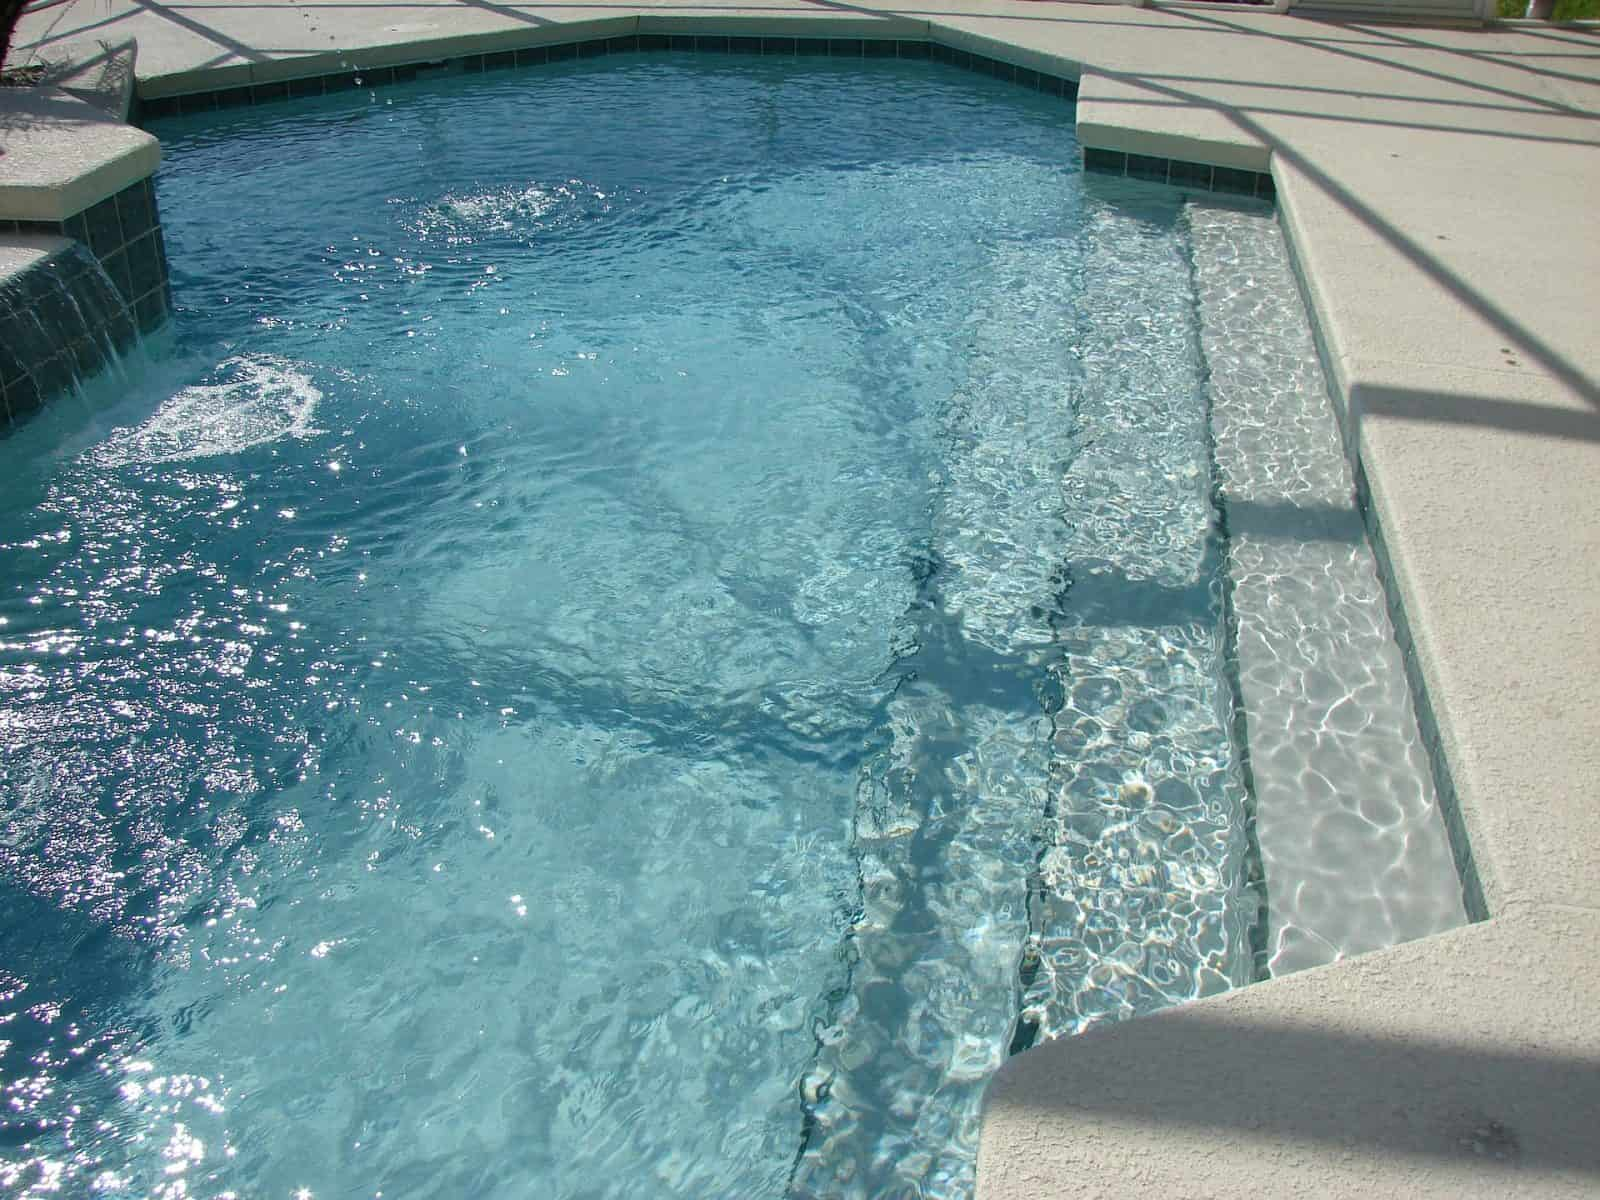 Pool at a Toronto home